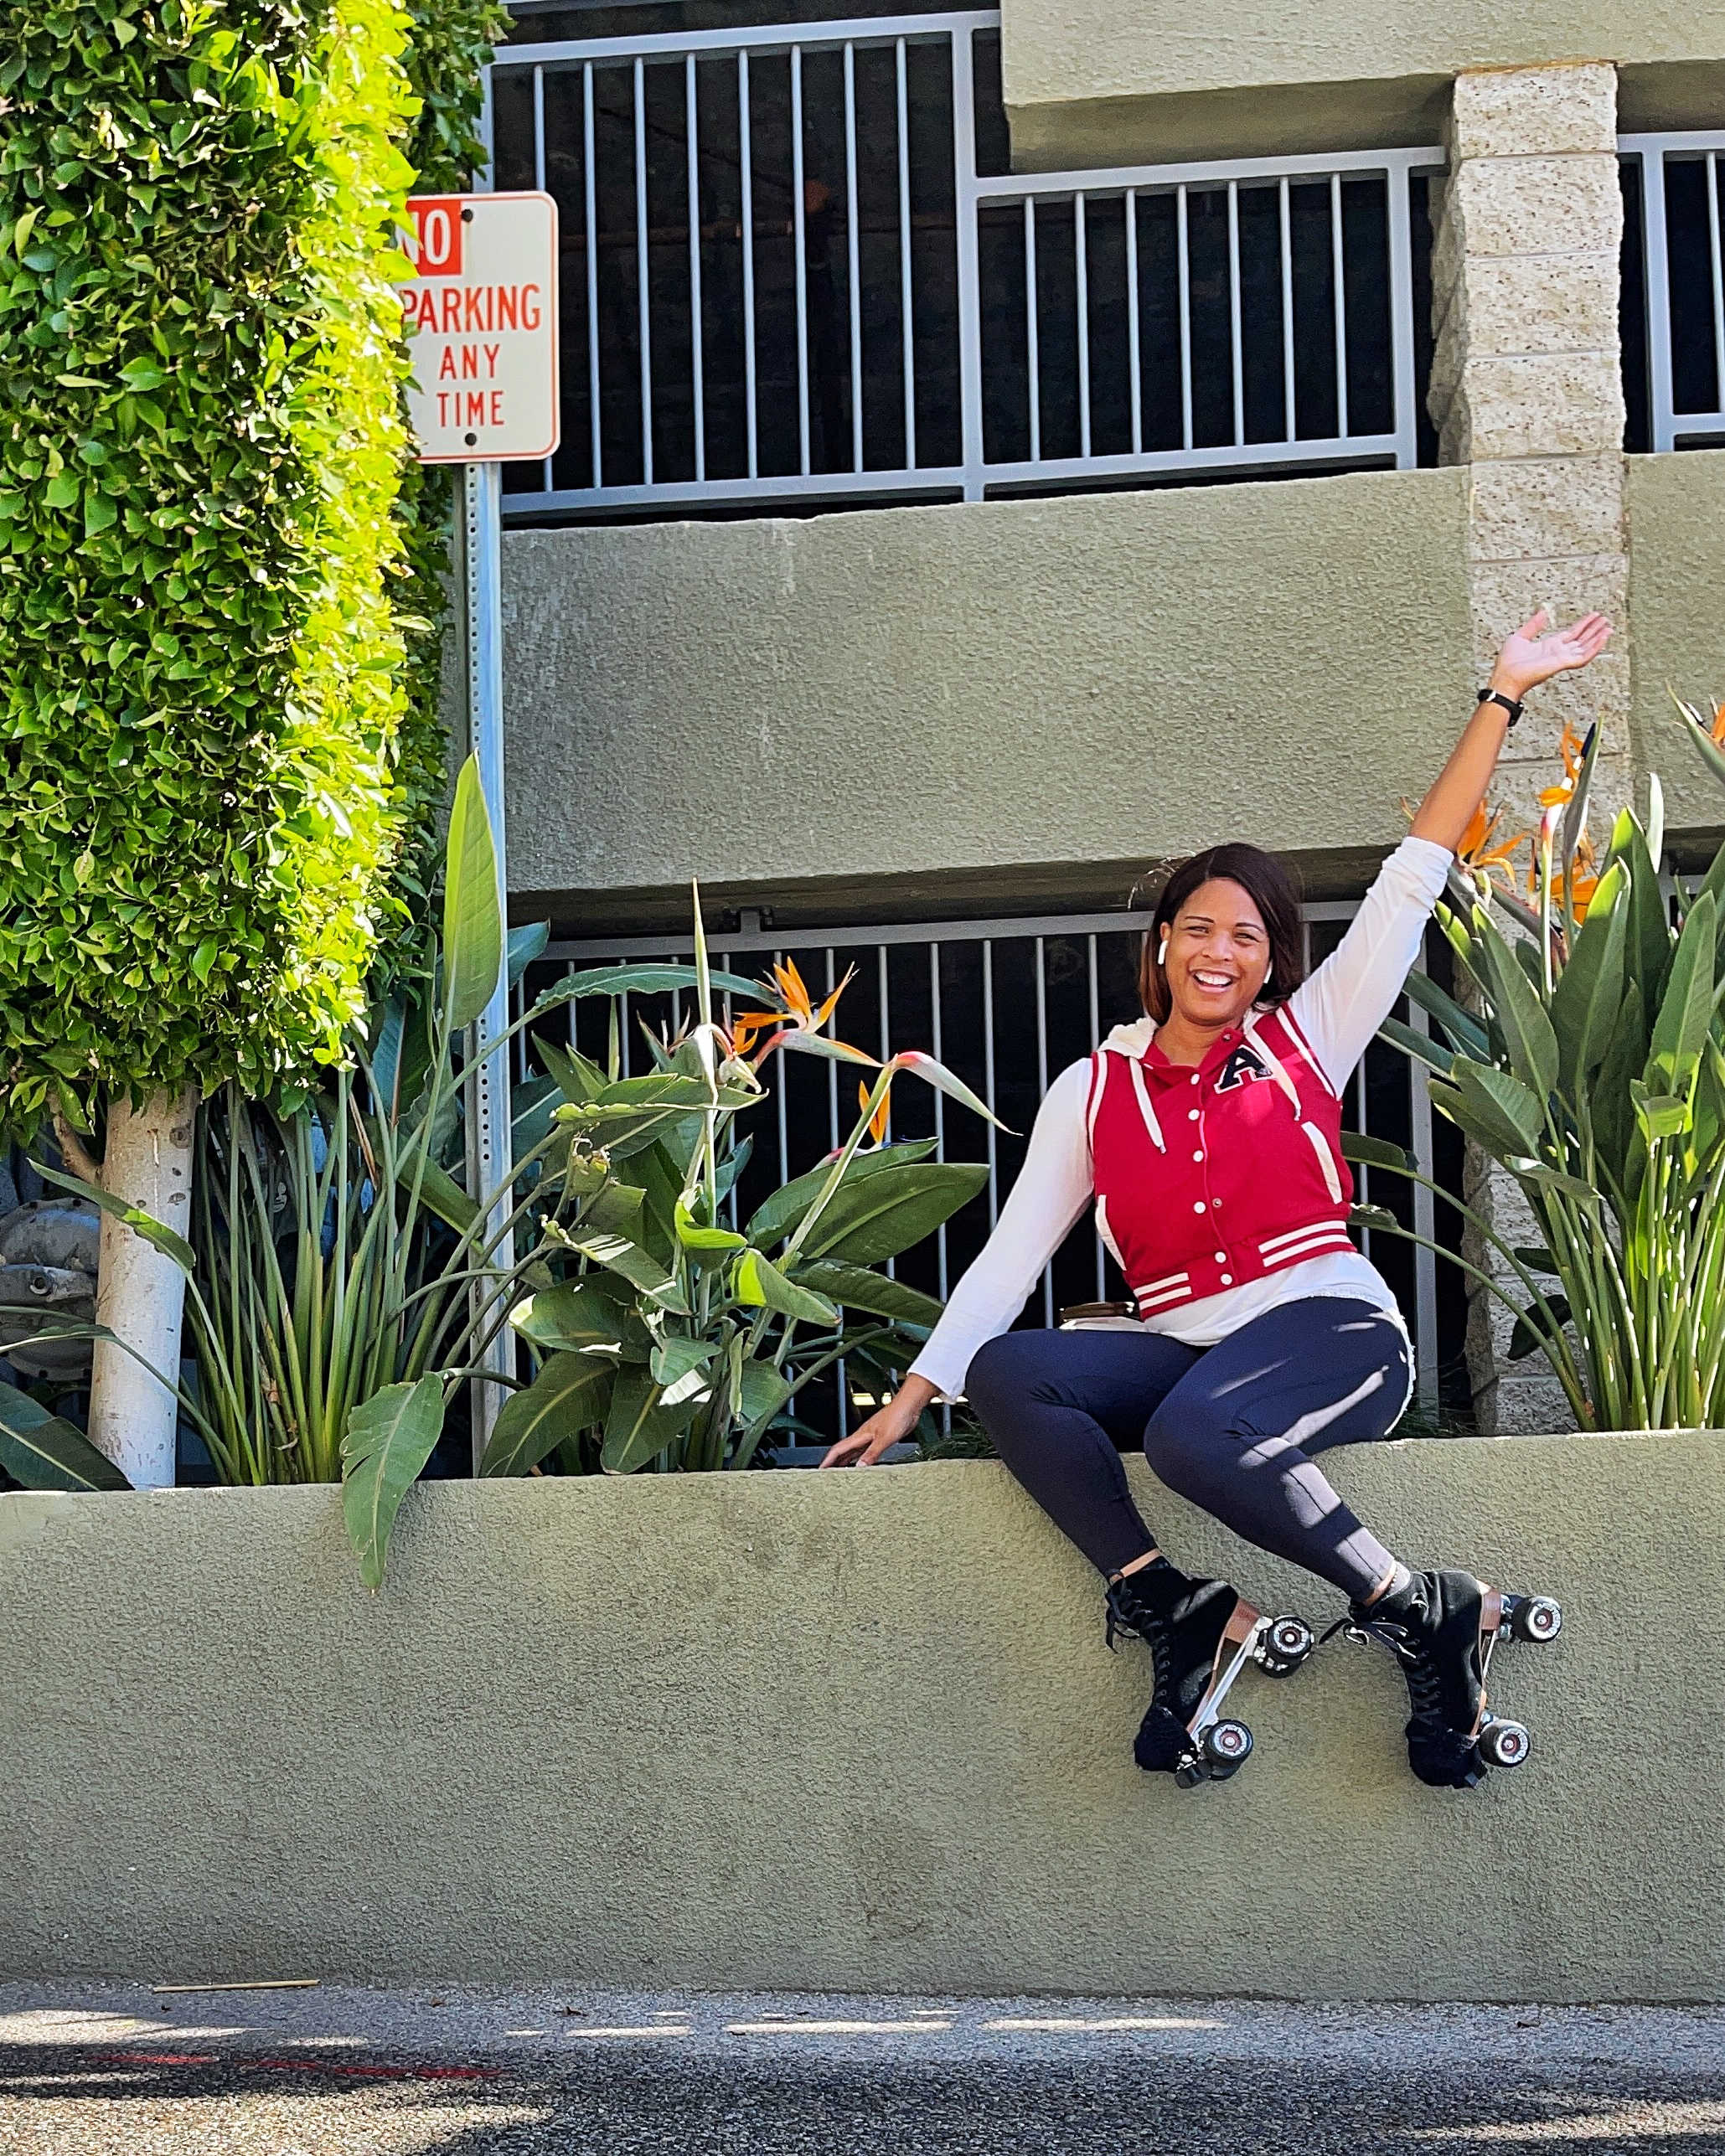 Roller skating is one of Athena Fleming's favorite things to do